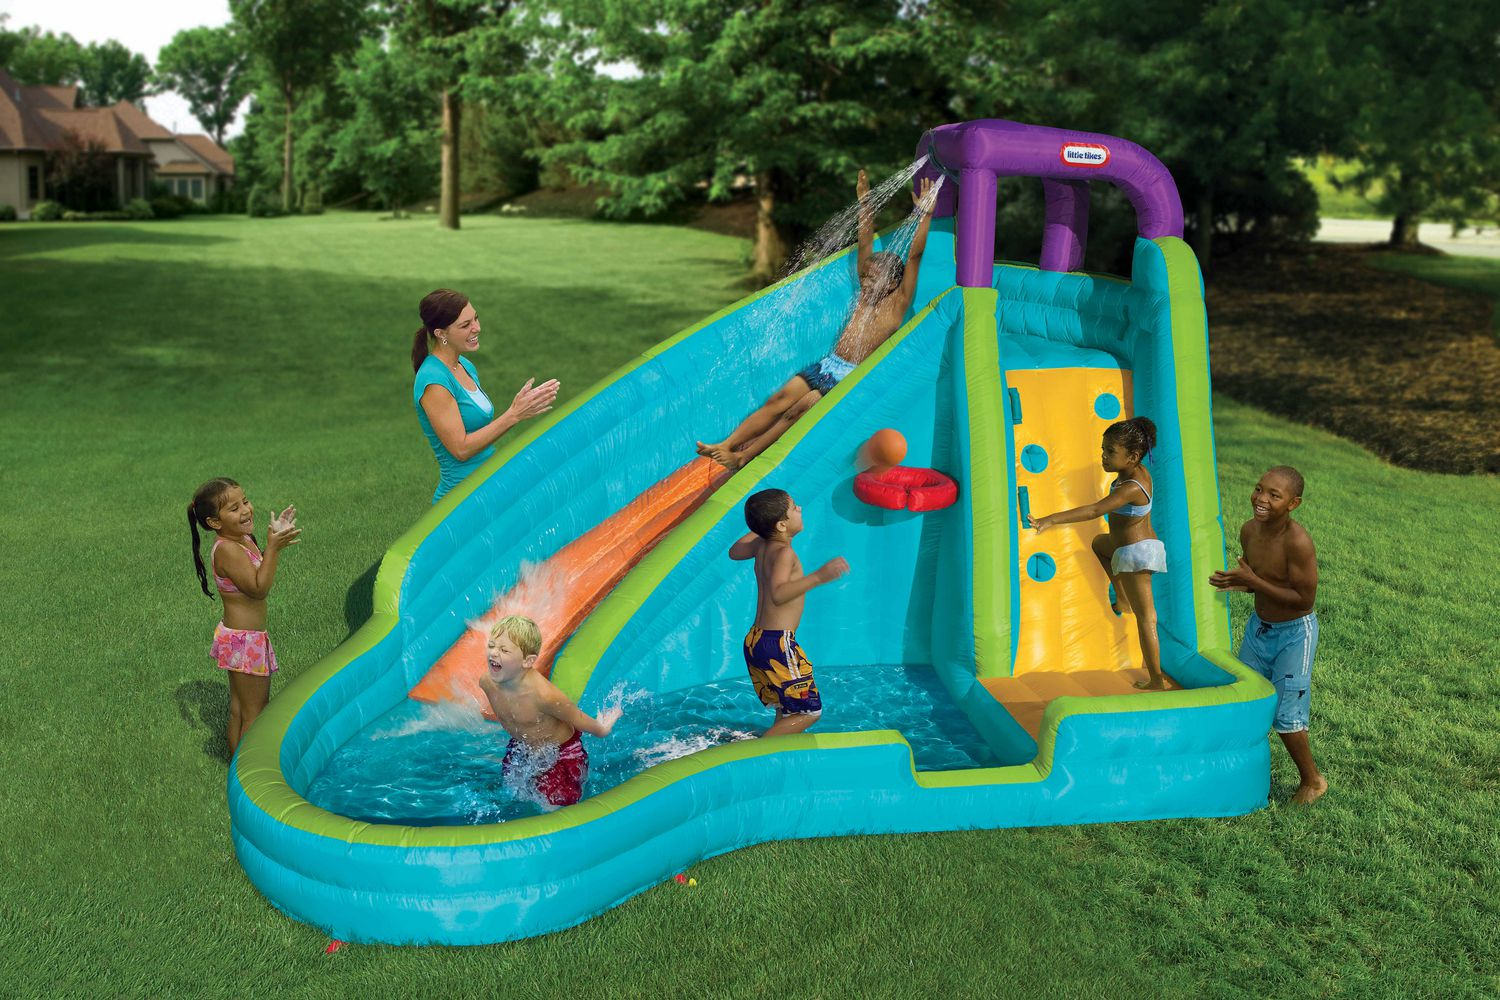 Fancy Little Tikes Outdoor Inflatables Slam 'n' Curve Water Slide regarding Lovely Backyard Inflatables